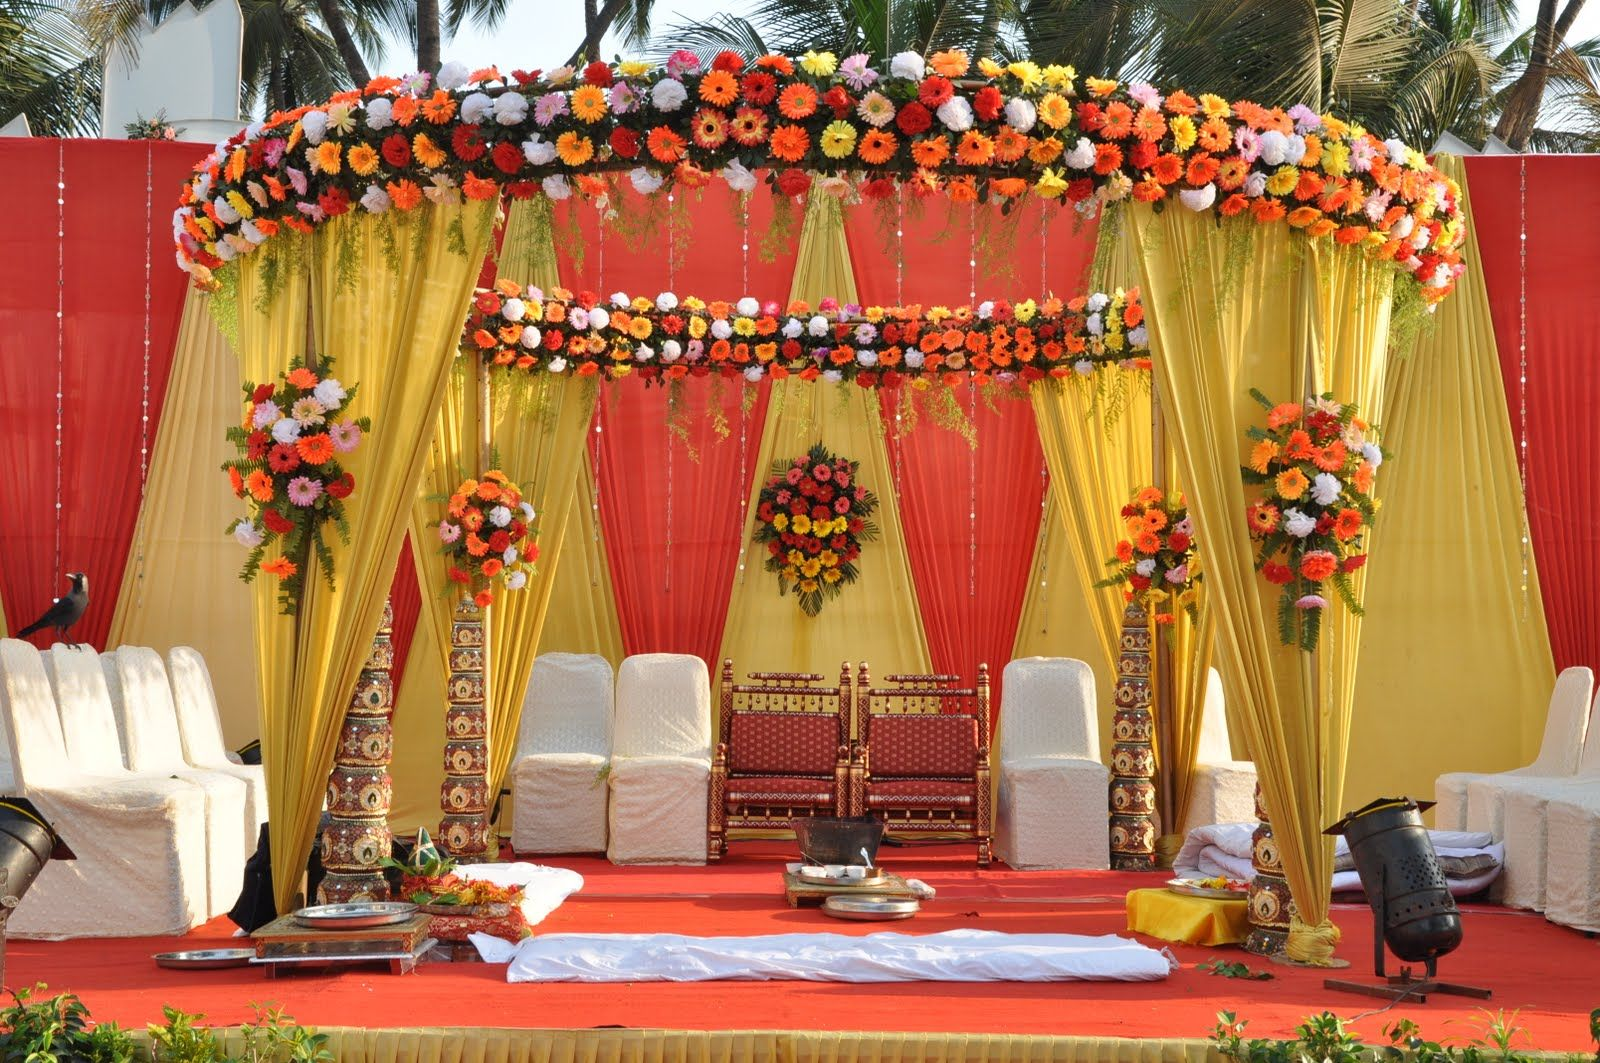 Indian wedding flowers decorations google search for Decoration flowers